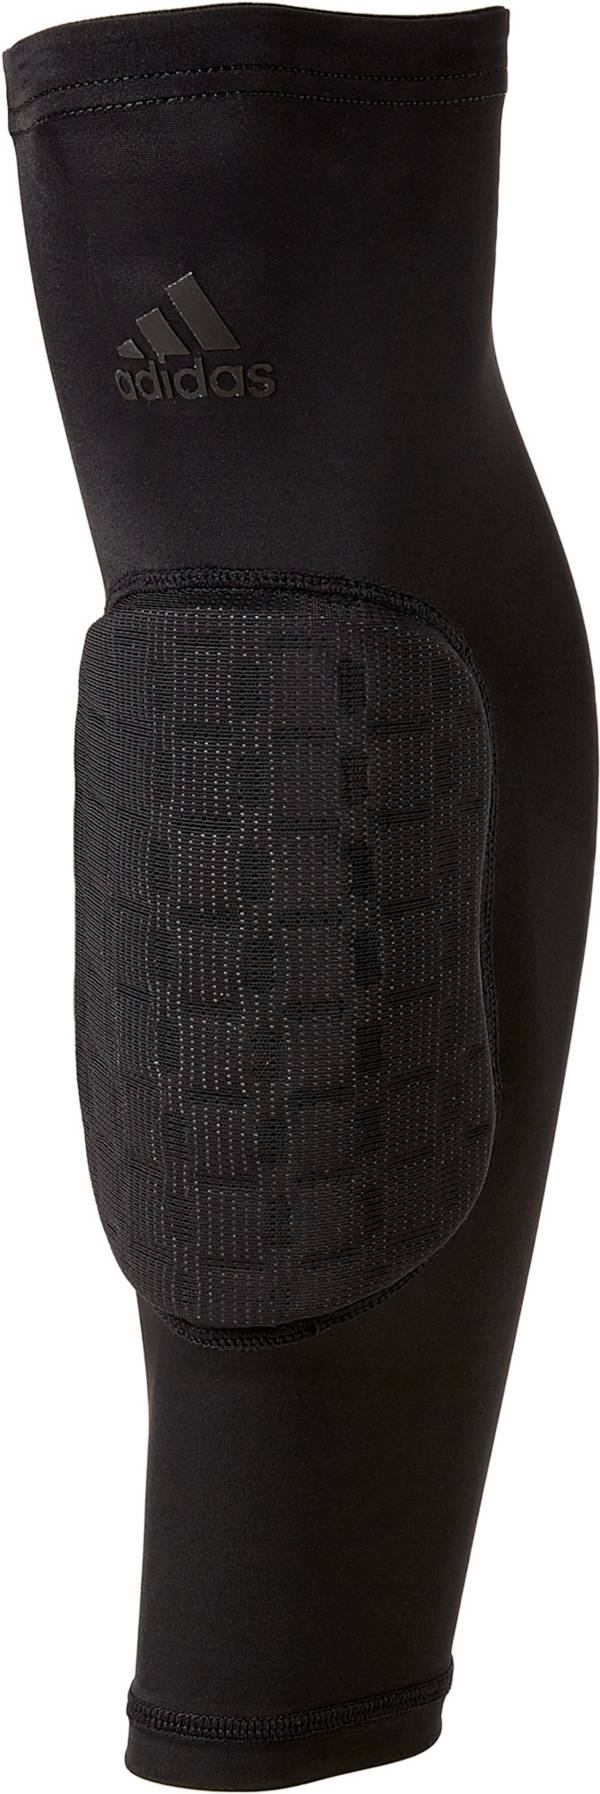 adidas Adult Padded Compression Long Knee Sleeve product image